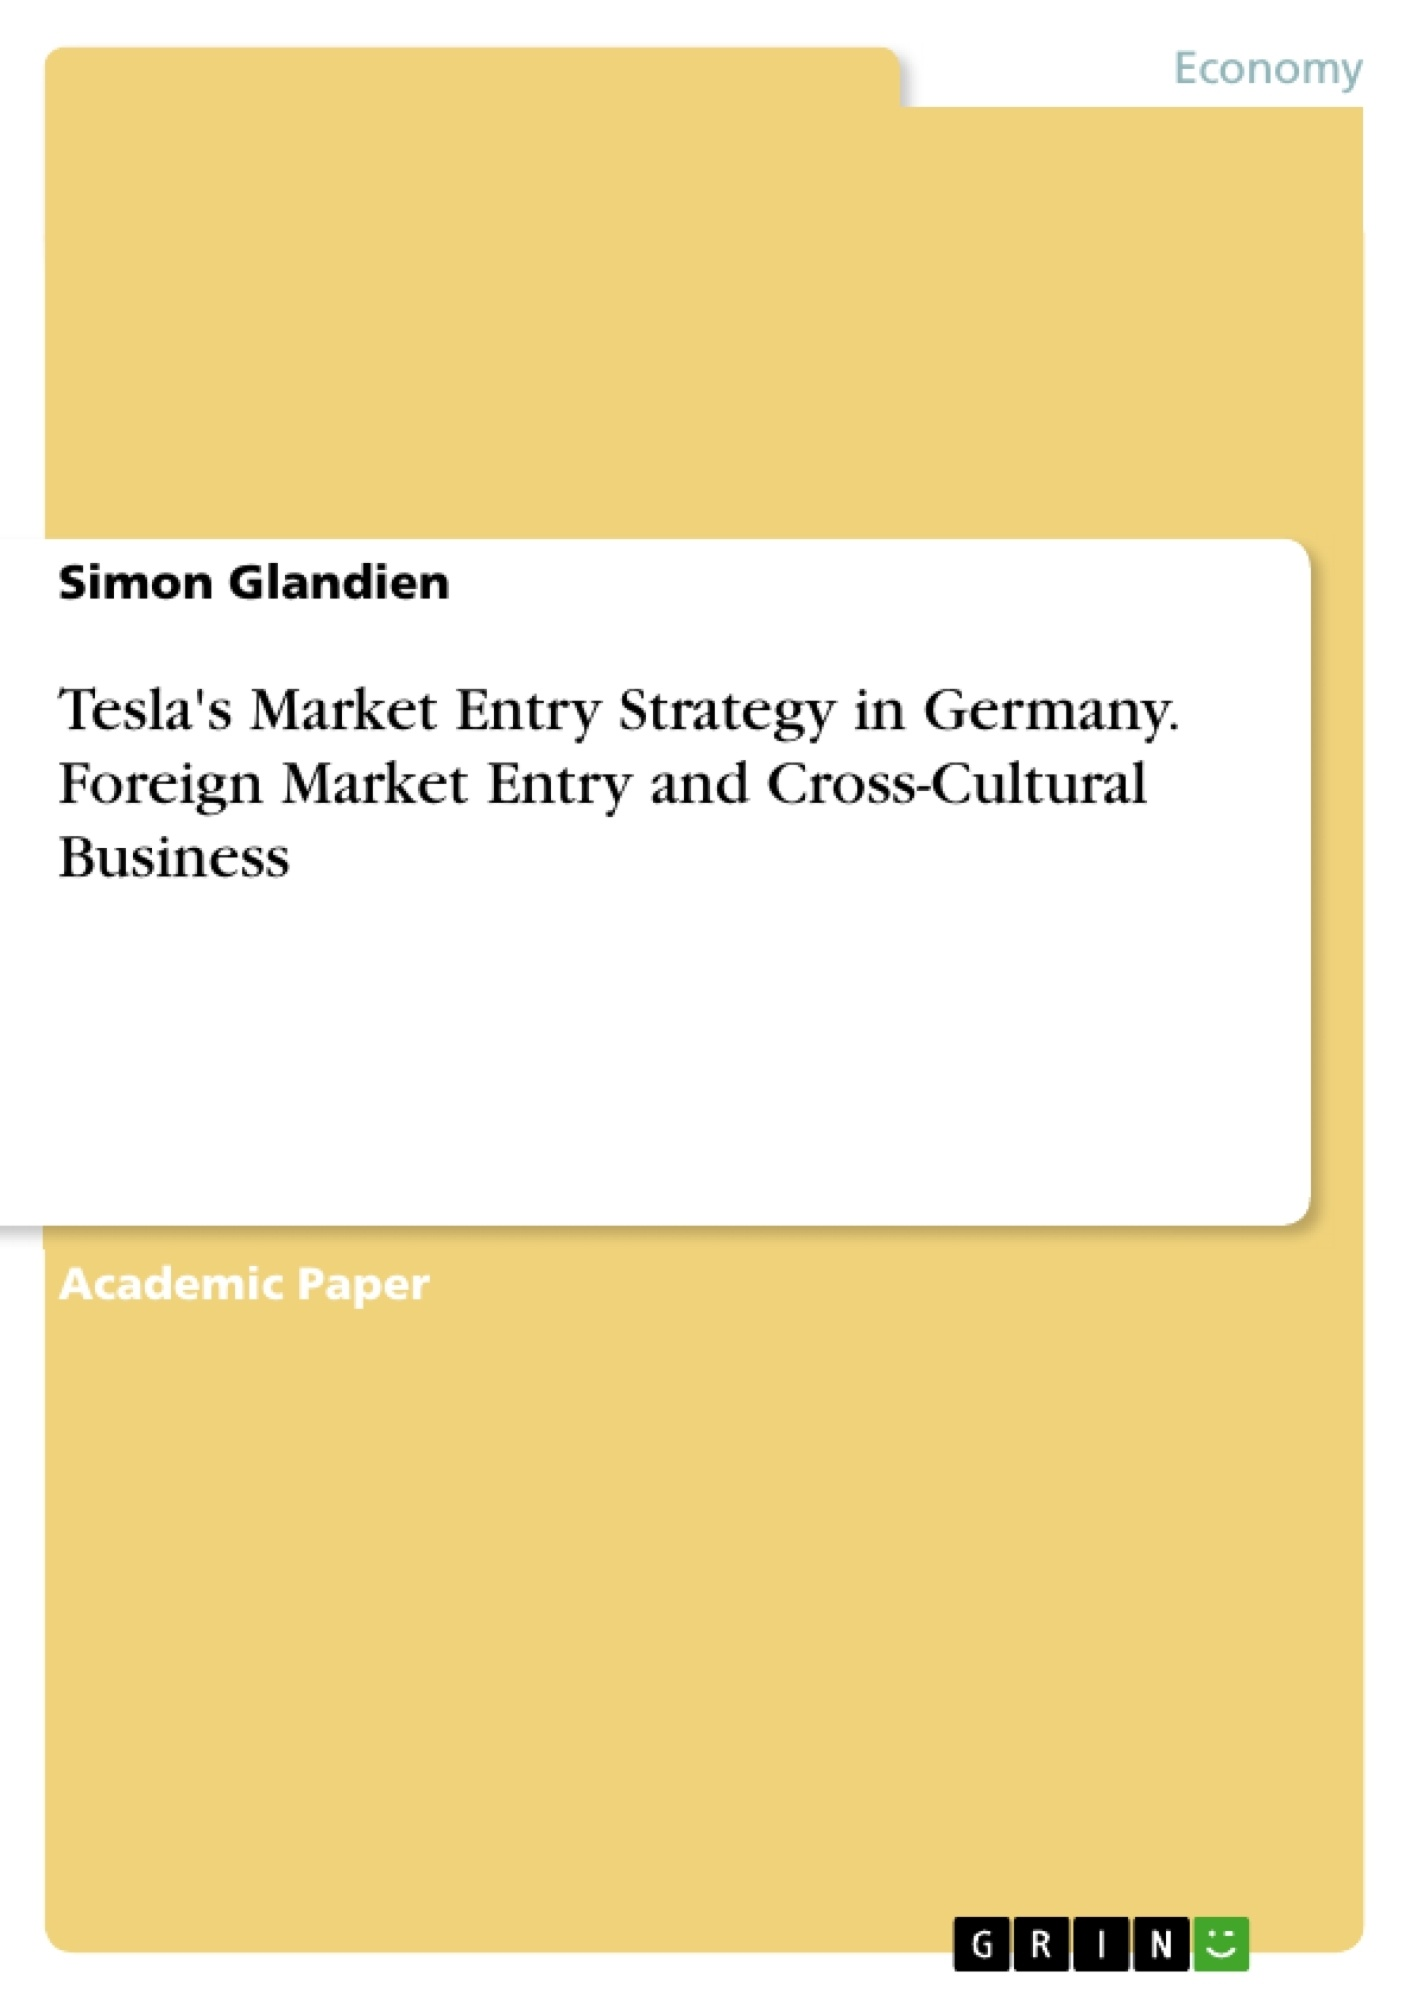 Title: Tesla's Market Entry Strategy in Germany. Foreign Market Entry and Cross-Cultural Business